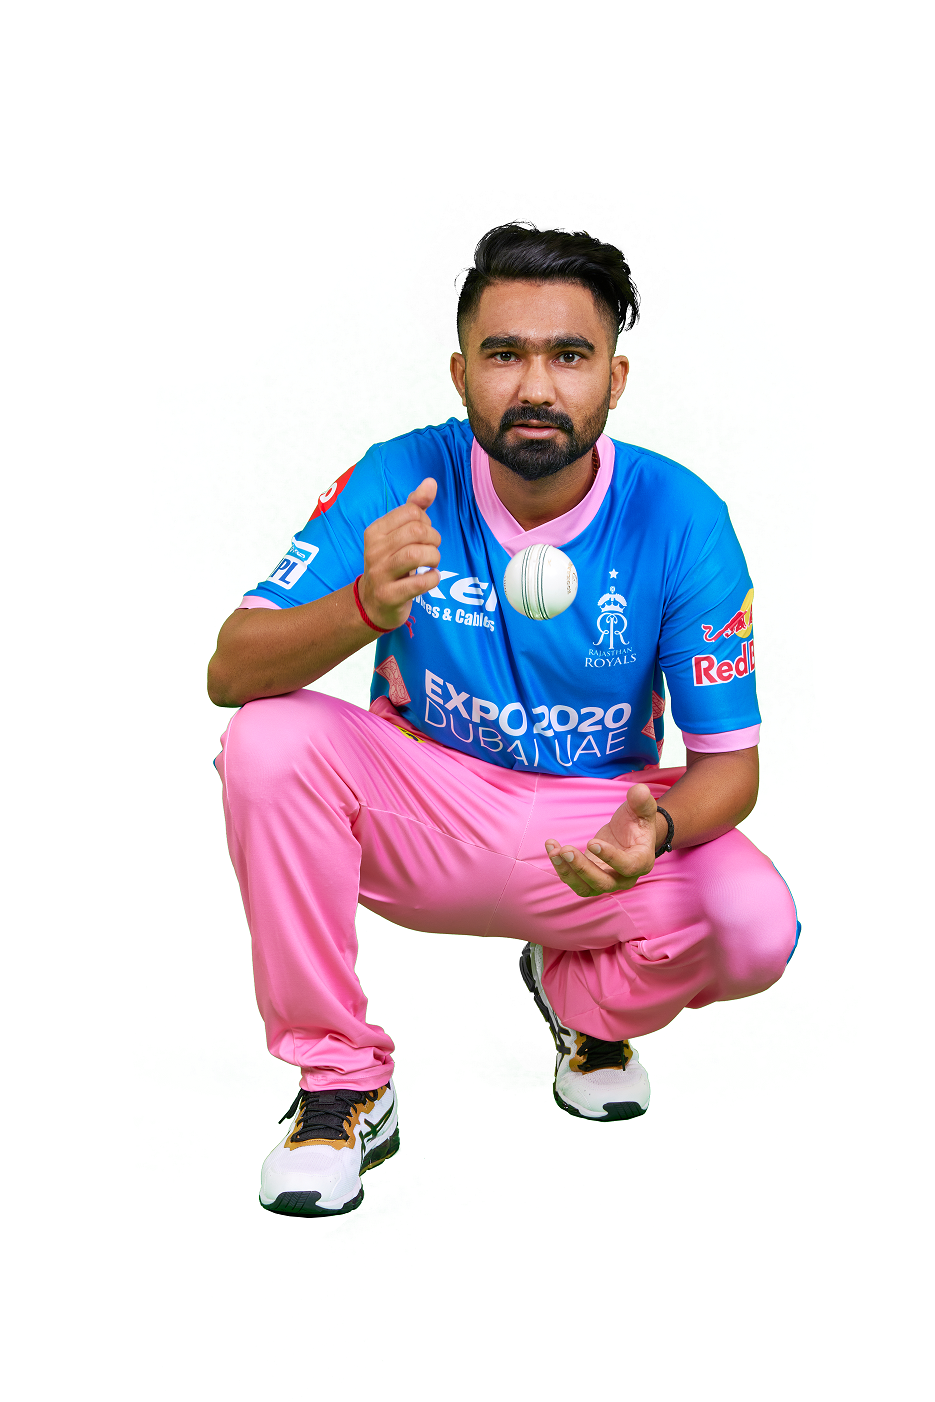 AN EPIC REVEAL OF THE NEW IPL 2021 JERSEY FOR RAJASTHAN ROYALS AT THEIR HOME STADIUM